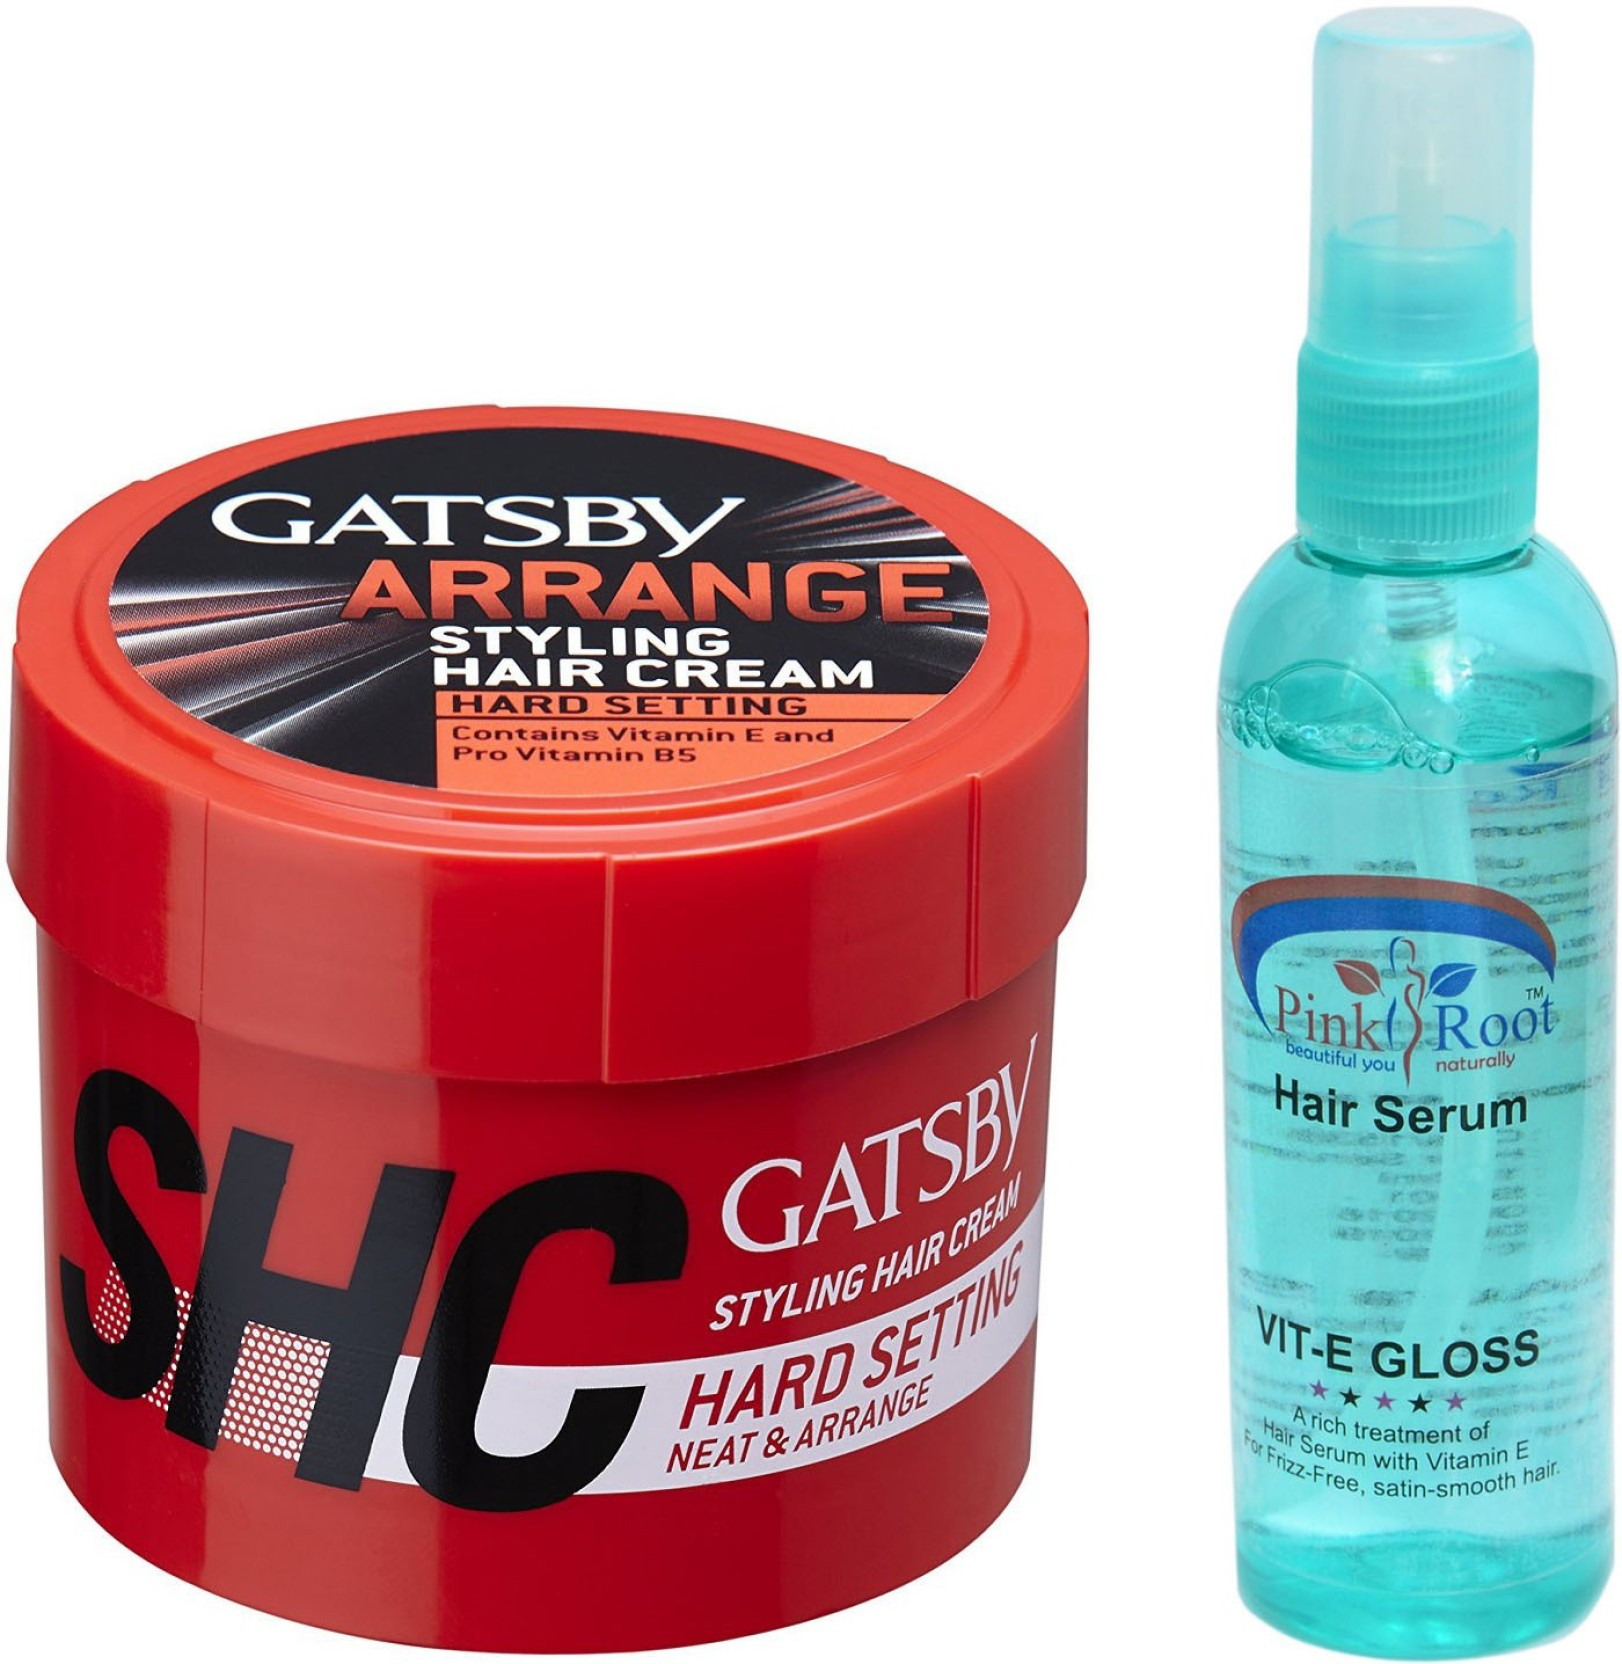 Gatsby Arrange Hair Styling Cream With Pink Root Serum Price In Pomade Share